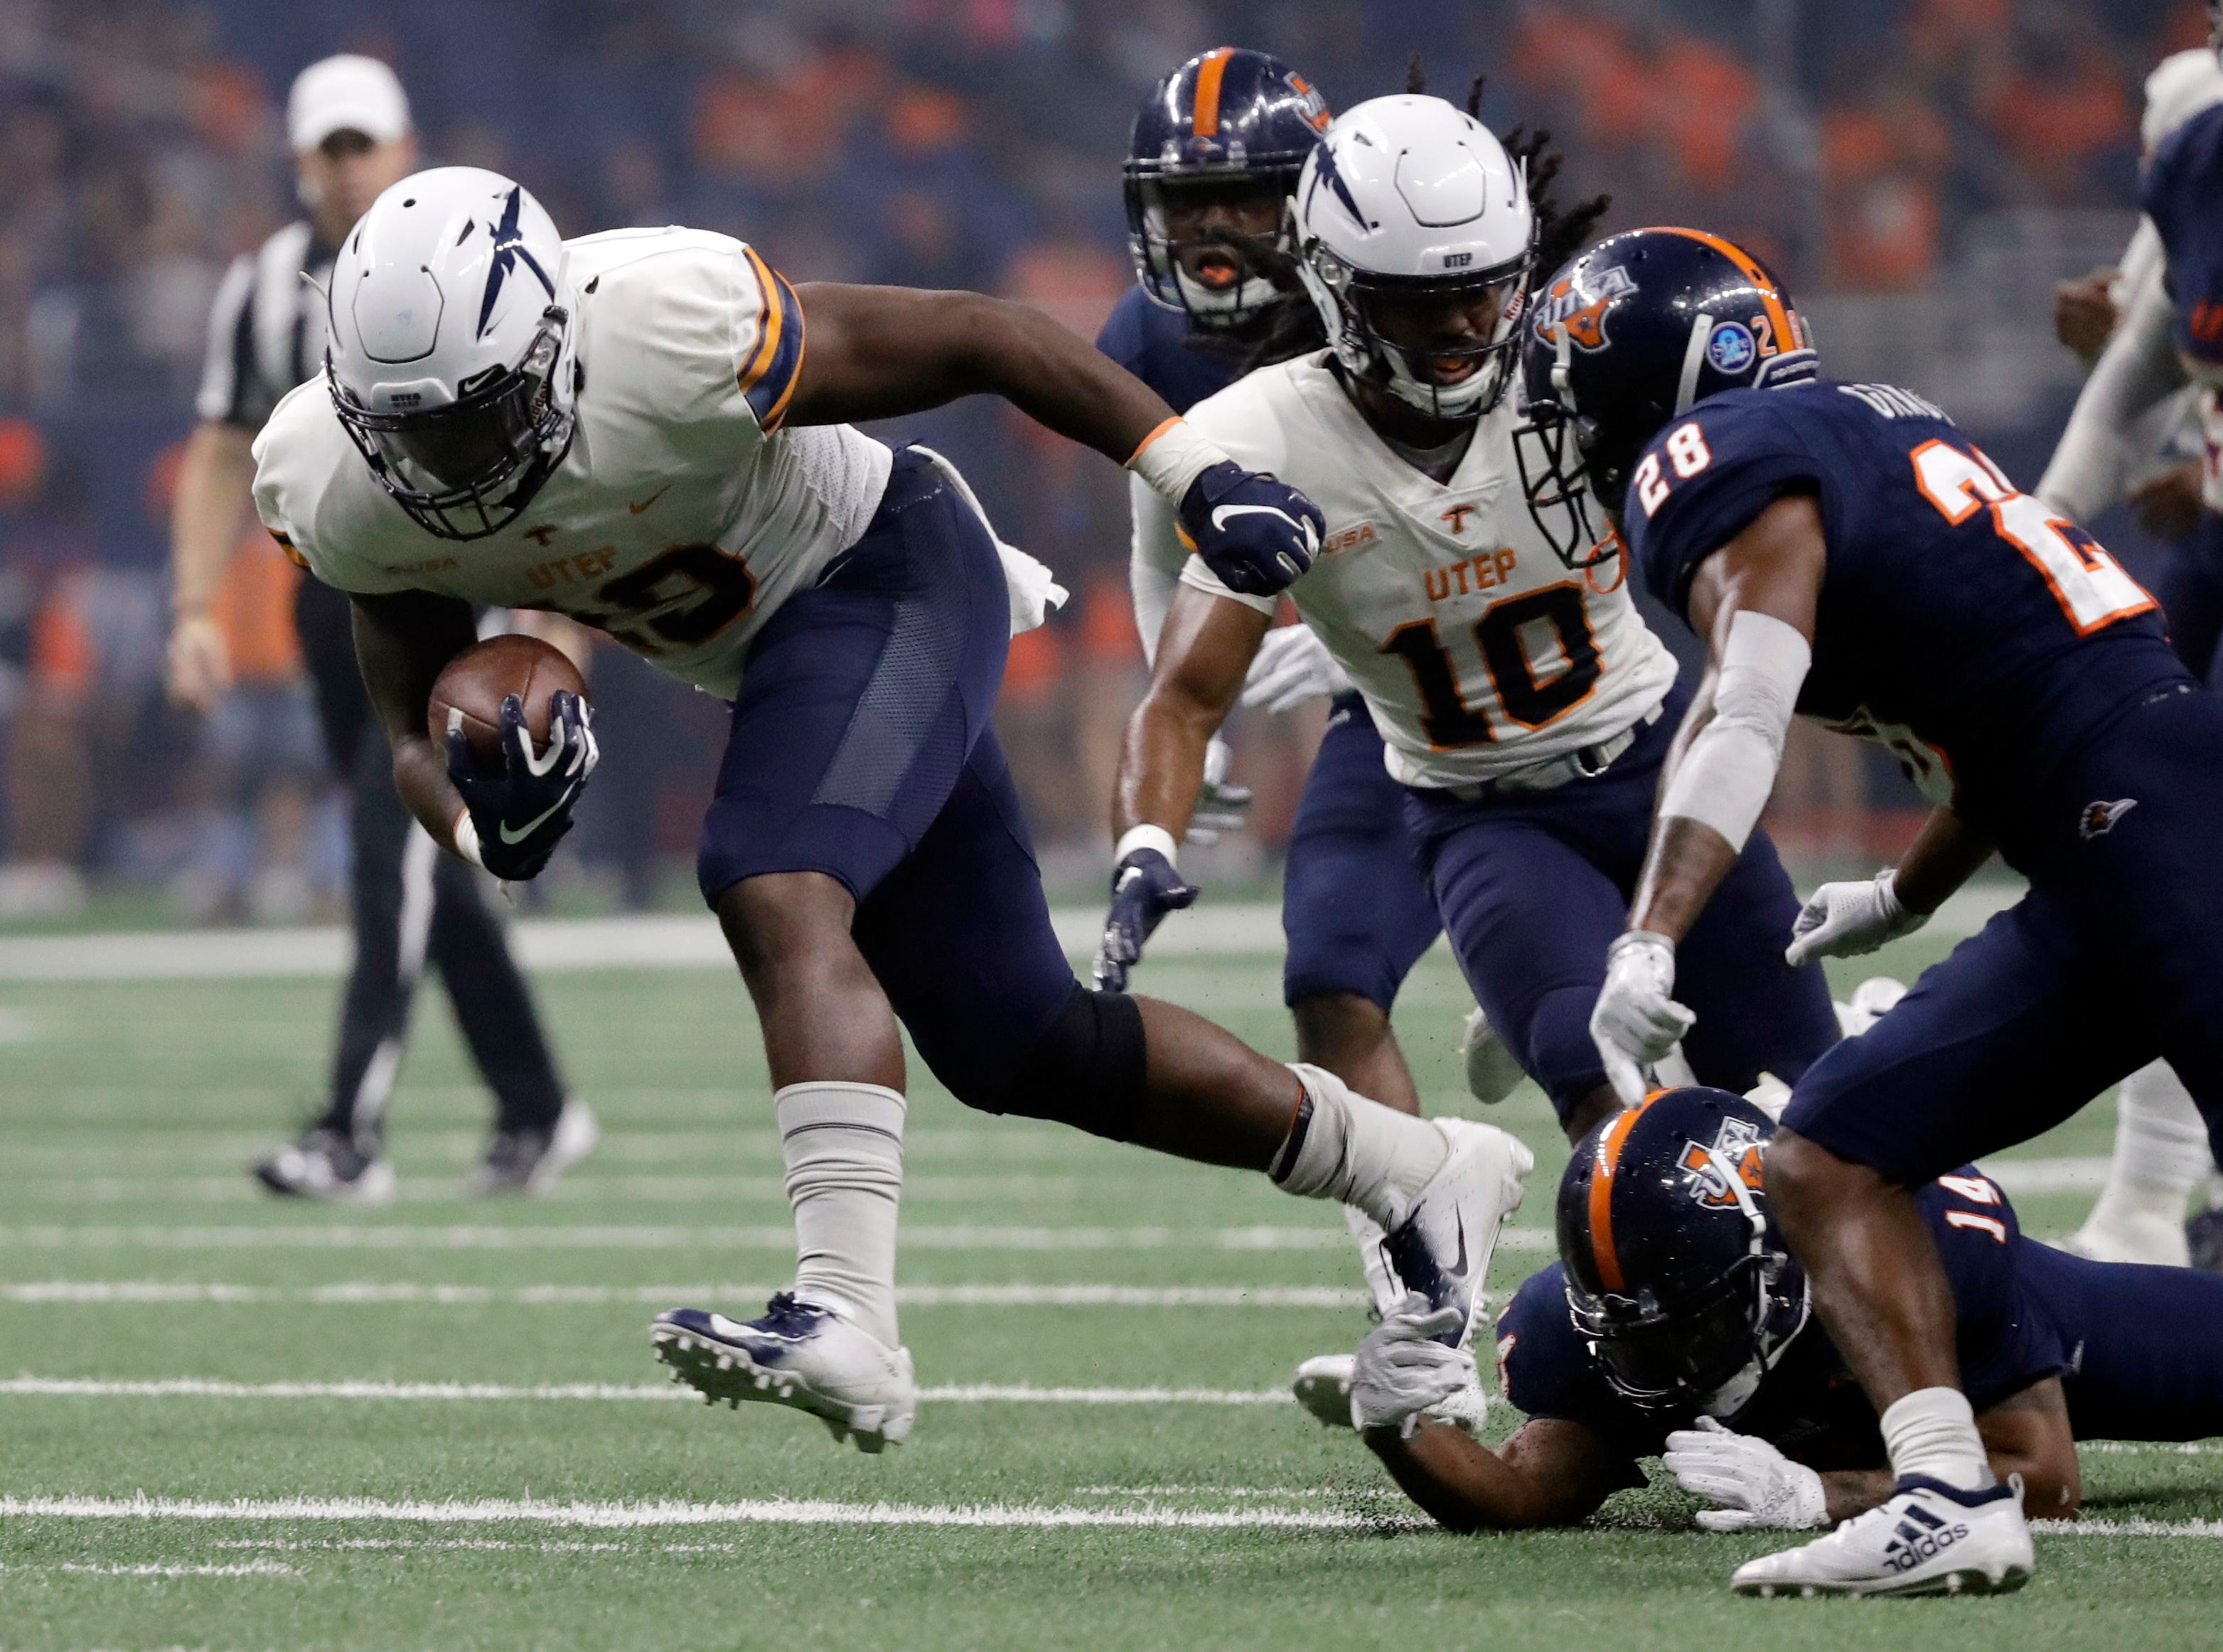 UTEP running back Treyvon Hughes (19) is tripped up by UTSA safety C.J. Levine (14) during the first half of an NCAA college football game Saturday, Sept. 29, 2018, in San Antonio. (AP Photo/Eric Gay)